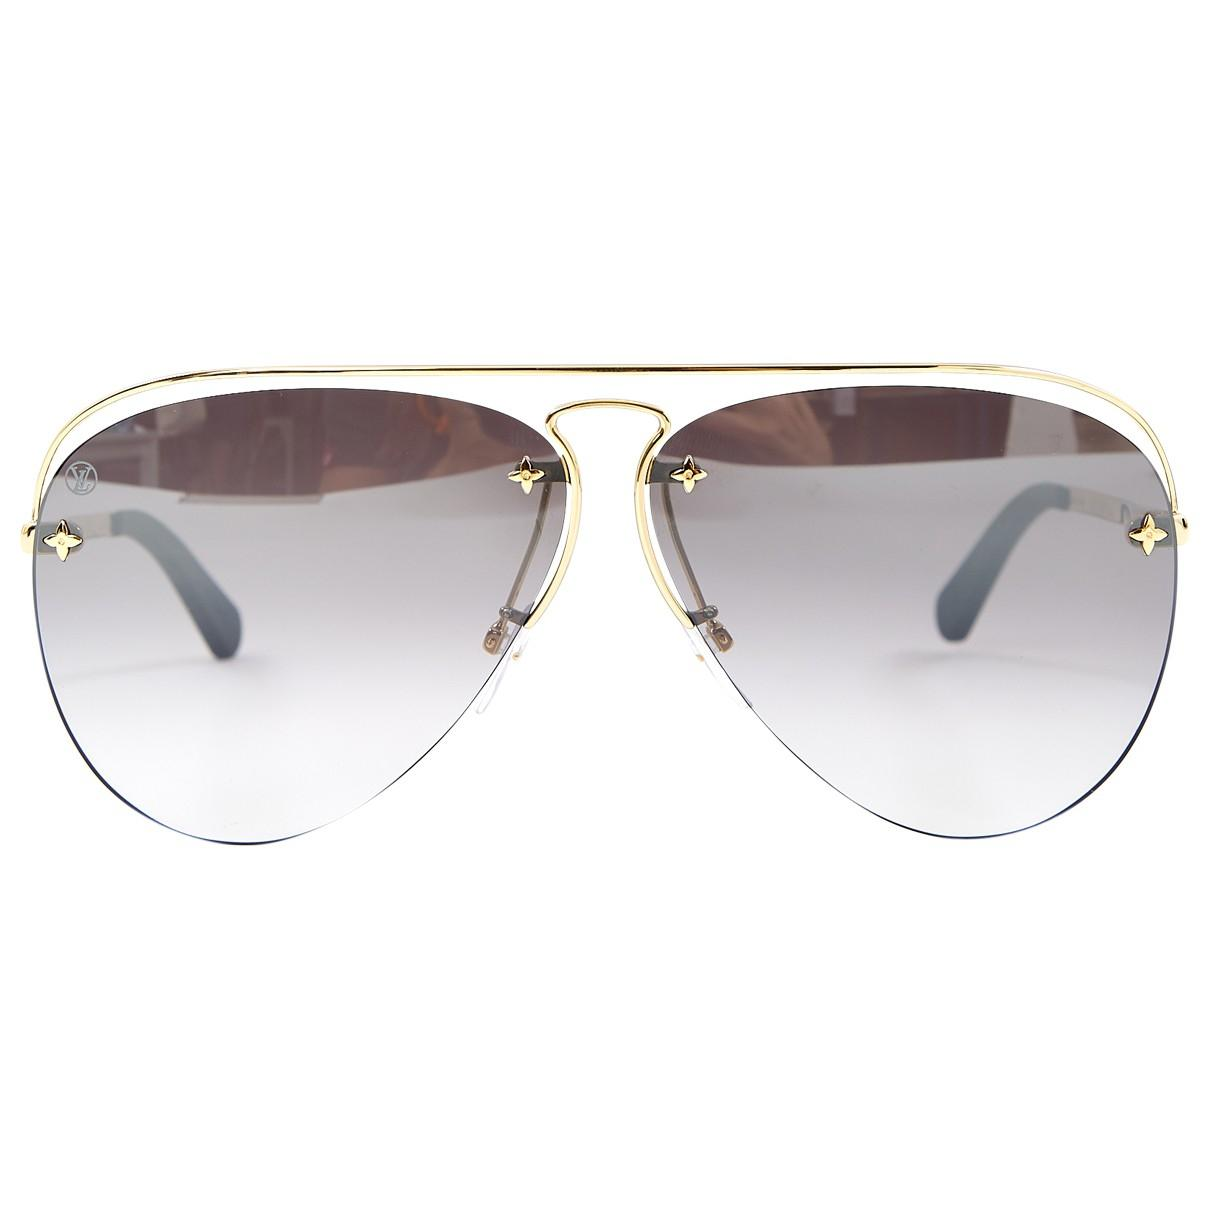 6075660cbad6 Lyst - Louis Vuitton Pre-owned Aviator Sunglasses in Black